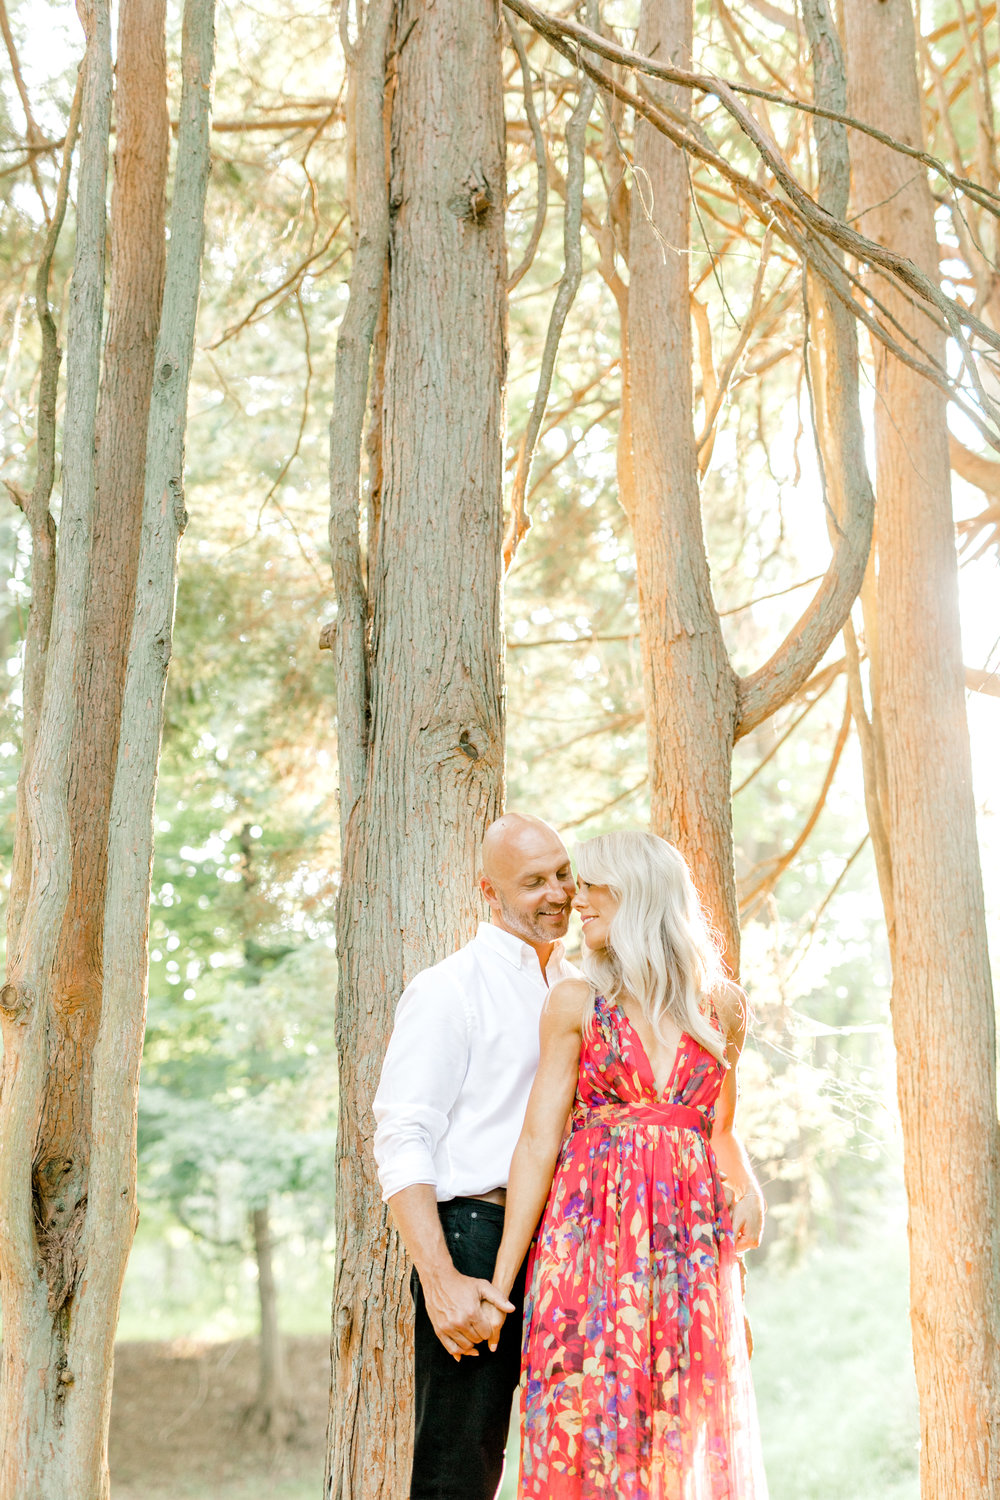 Liz and Bill get close for an intimate moment at their romantic sunset woodland engagement session at Parque at Ridley Creek